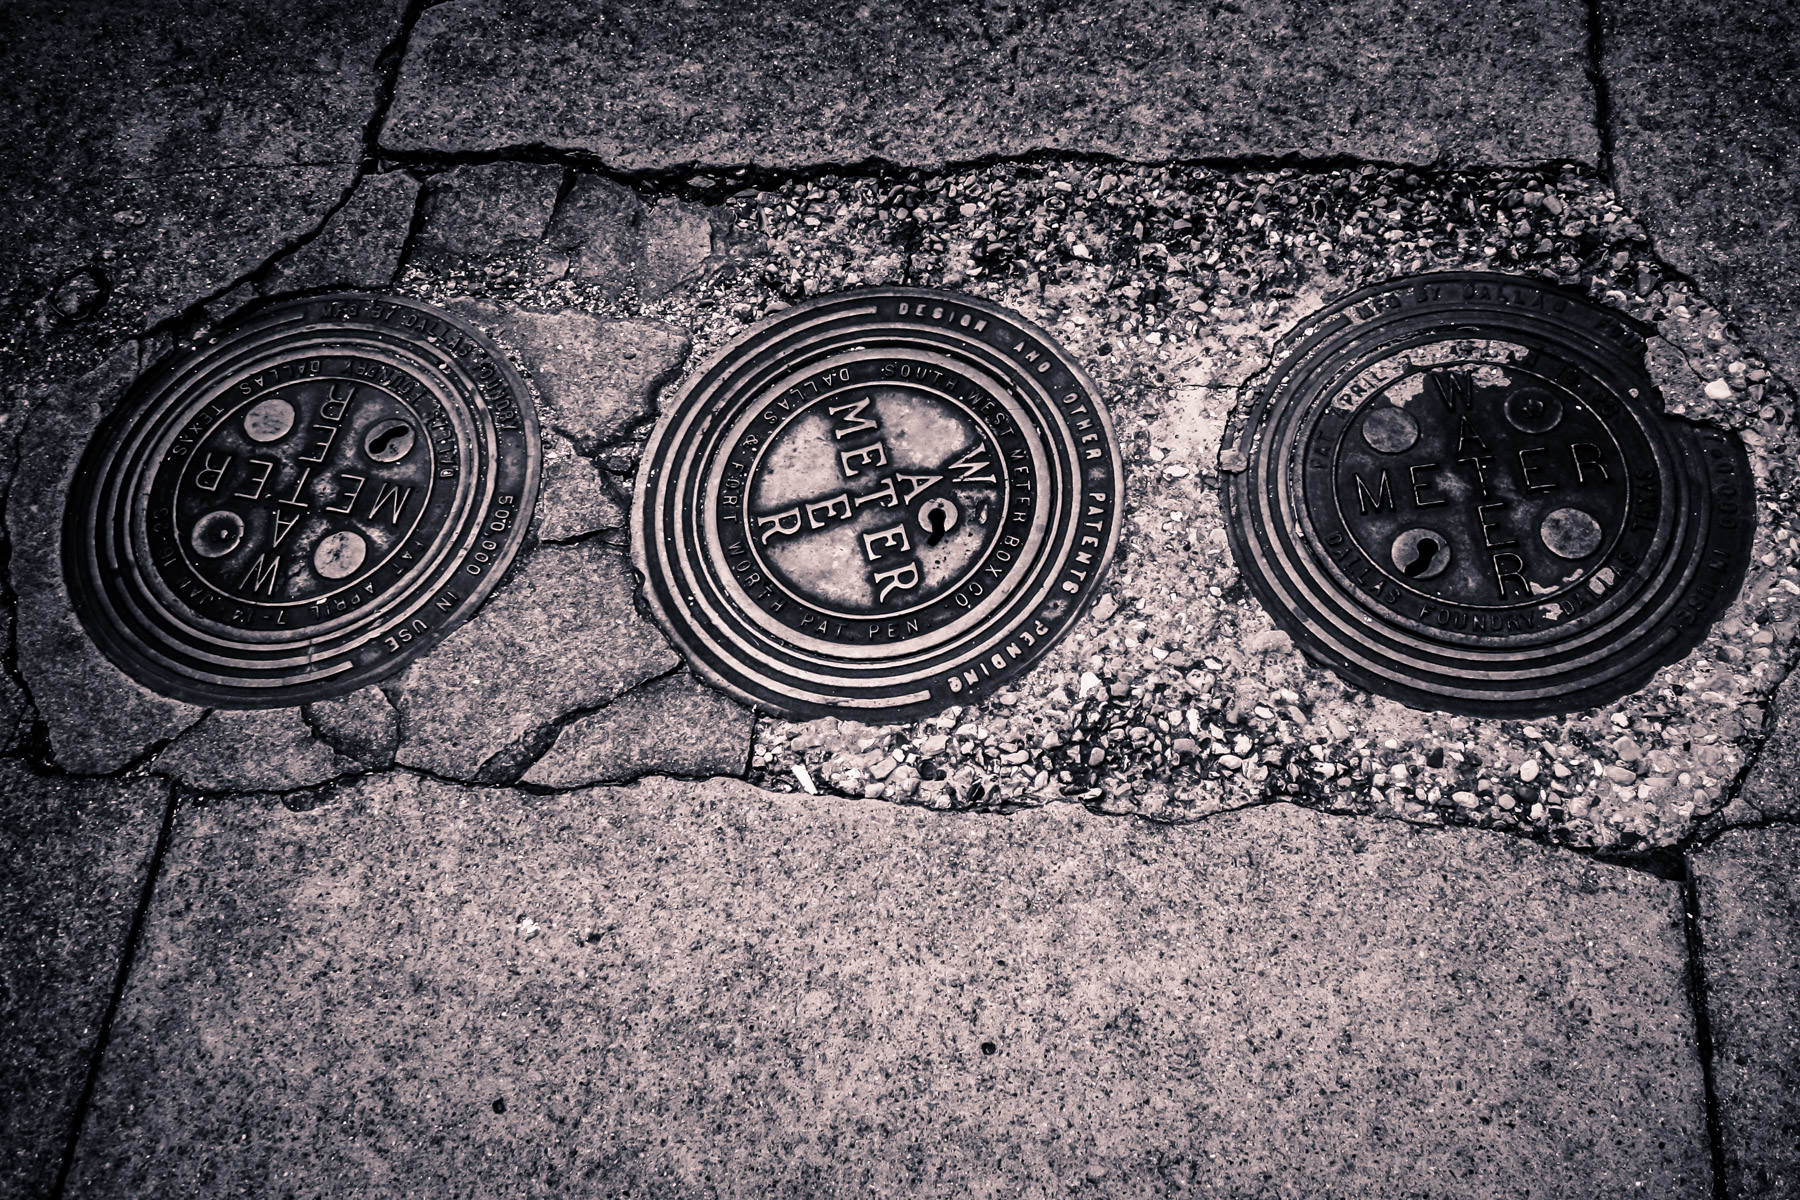 Three water meters embedded in the sidewalk in Downtown Tyler, Texas.